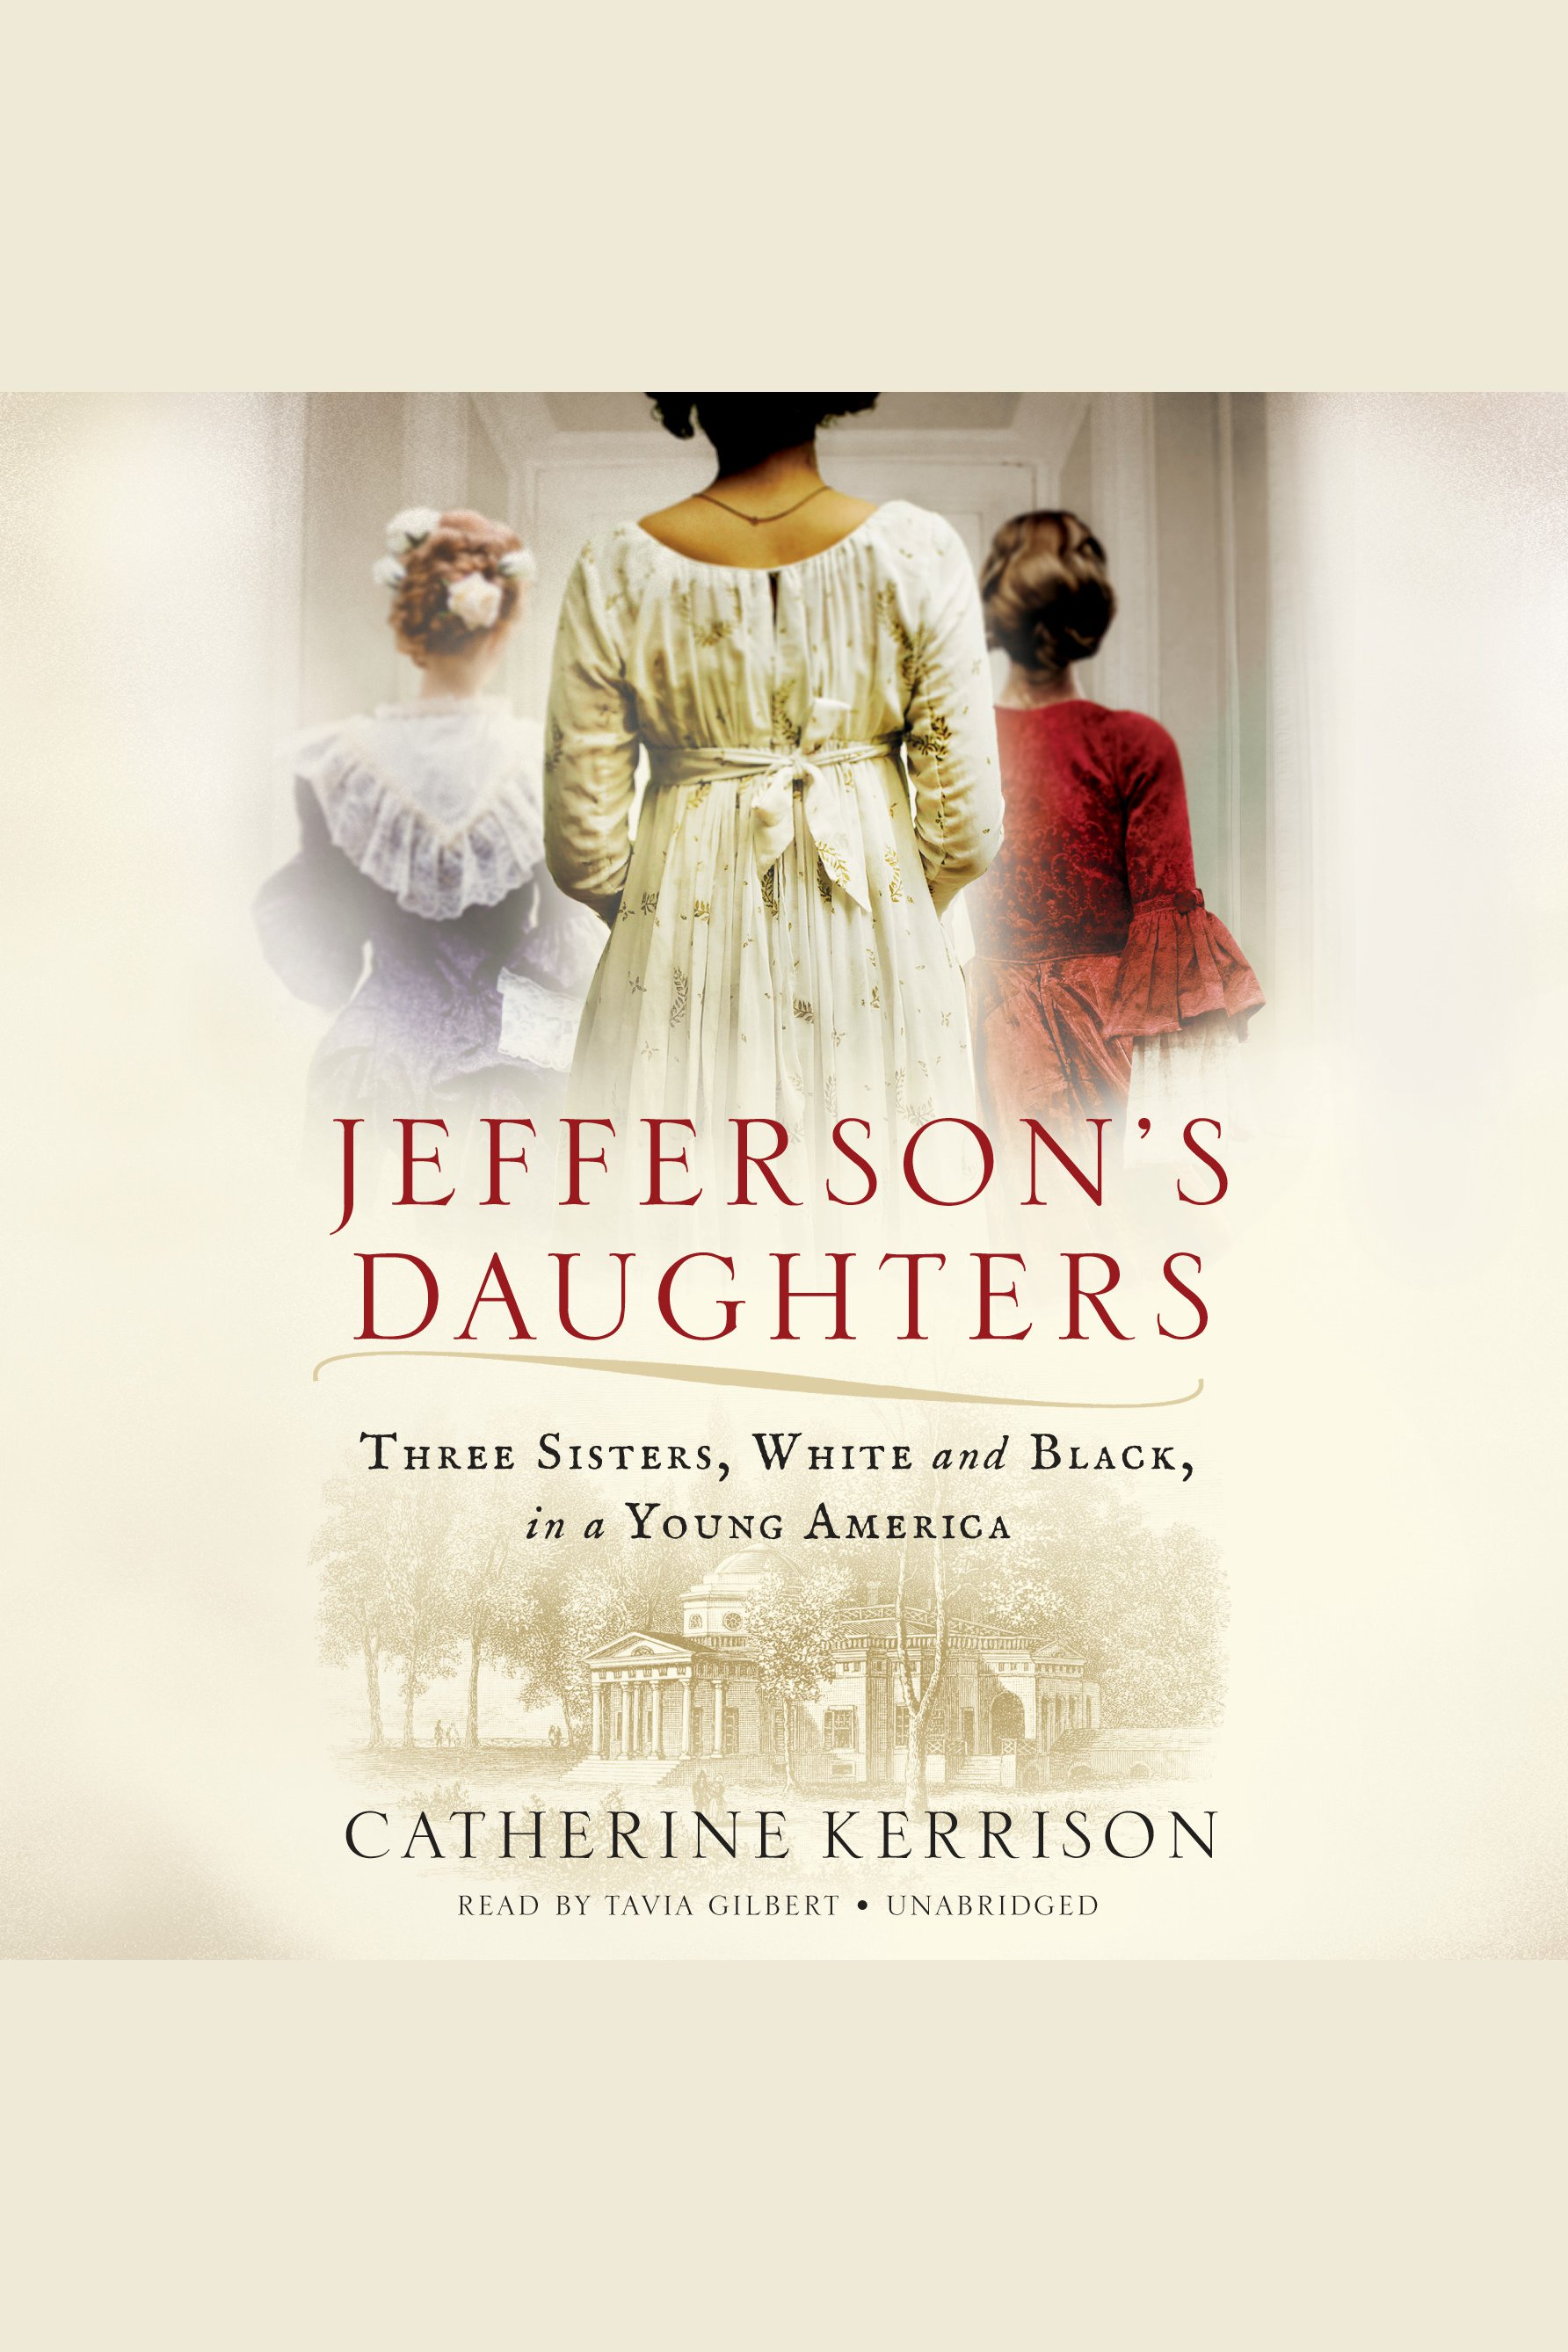 Jefferson's daughters [AudioEbook] : three sisters, white and black, in a young America